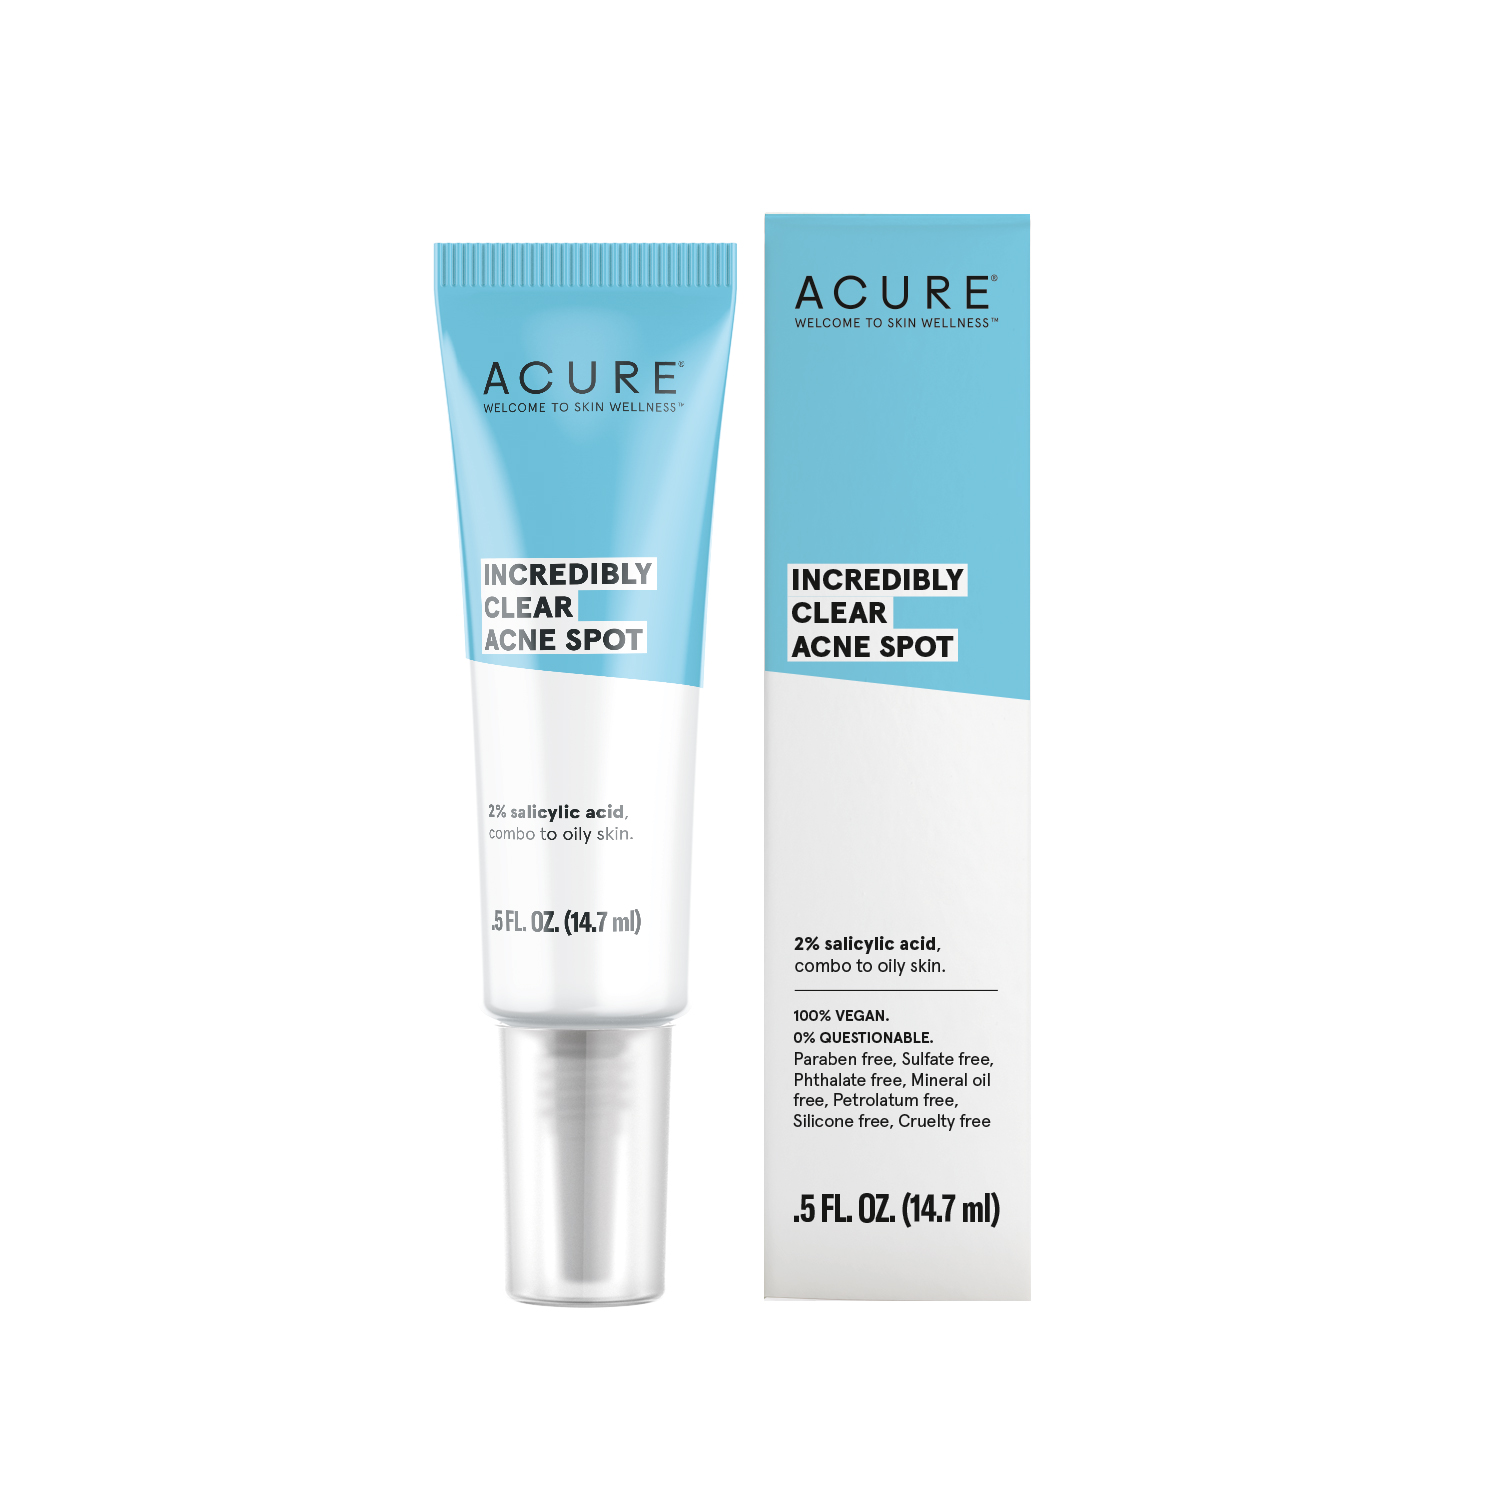 Acure Acne Spot